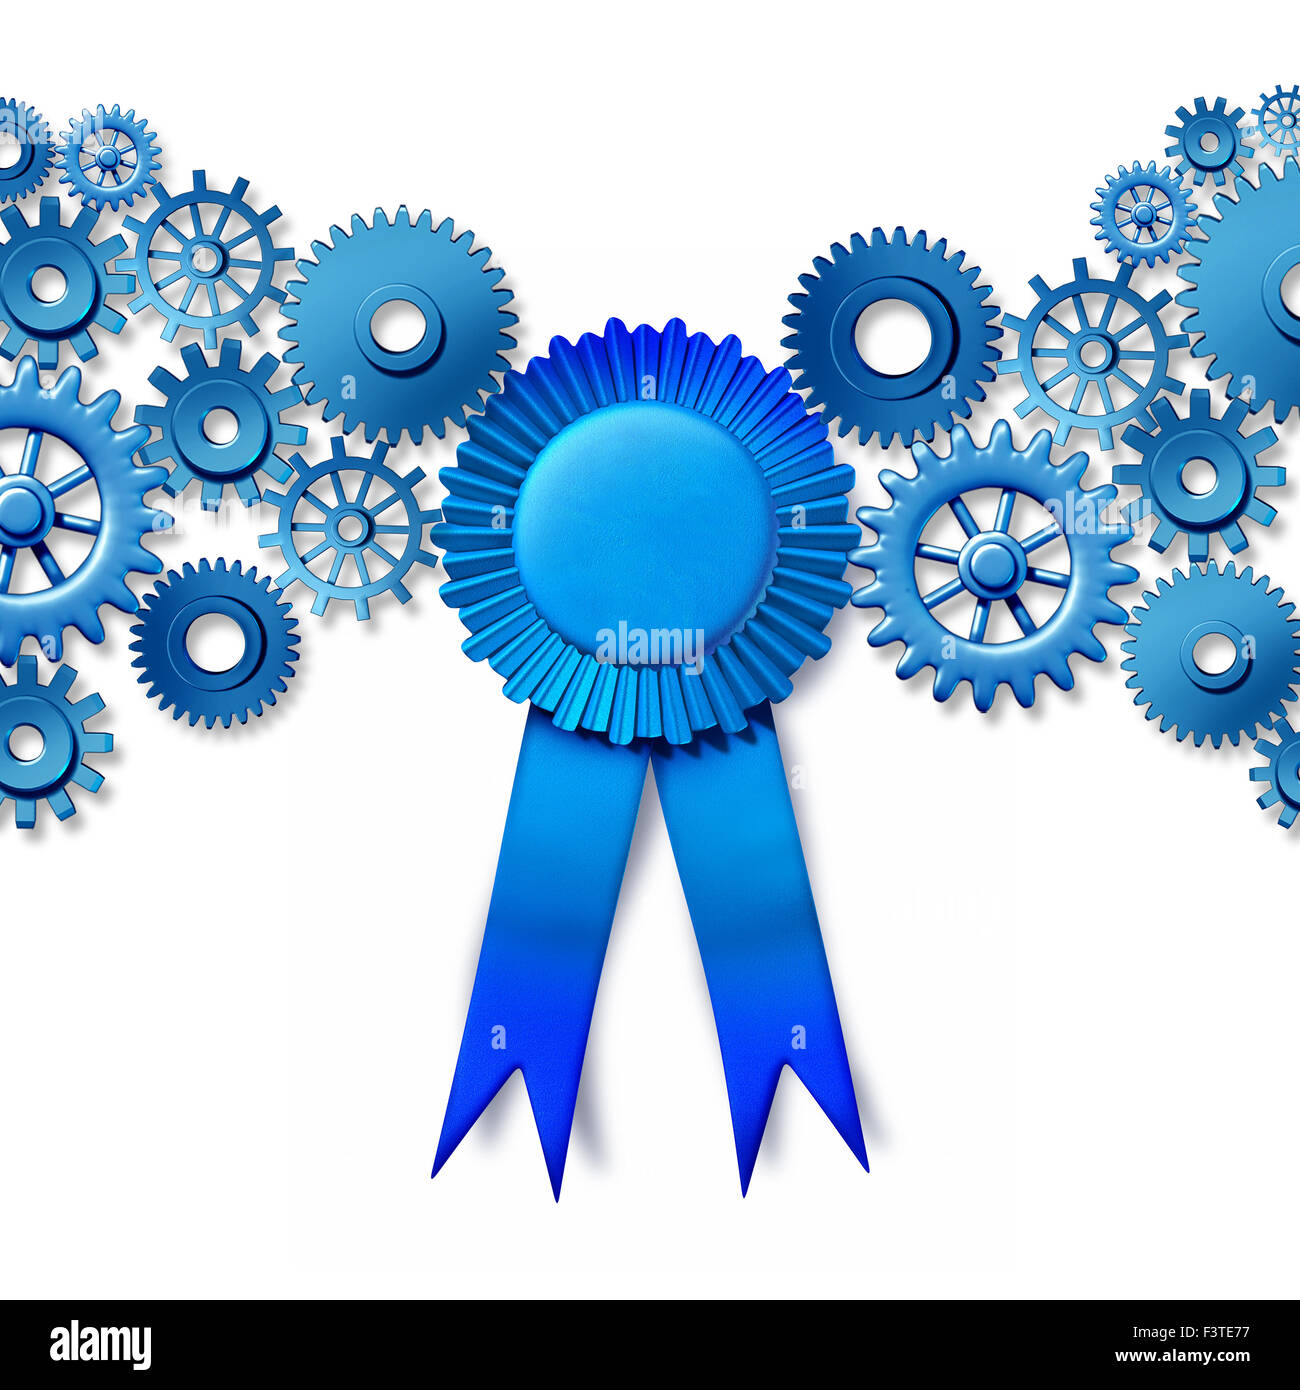 Business award concept as a blue ribbon reward turning connected gears and cog wheels as an industry honor for working - Stock Image